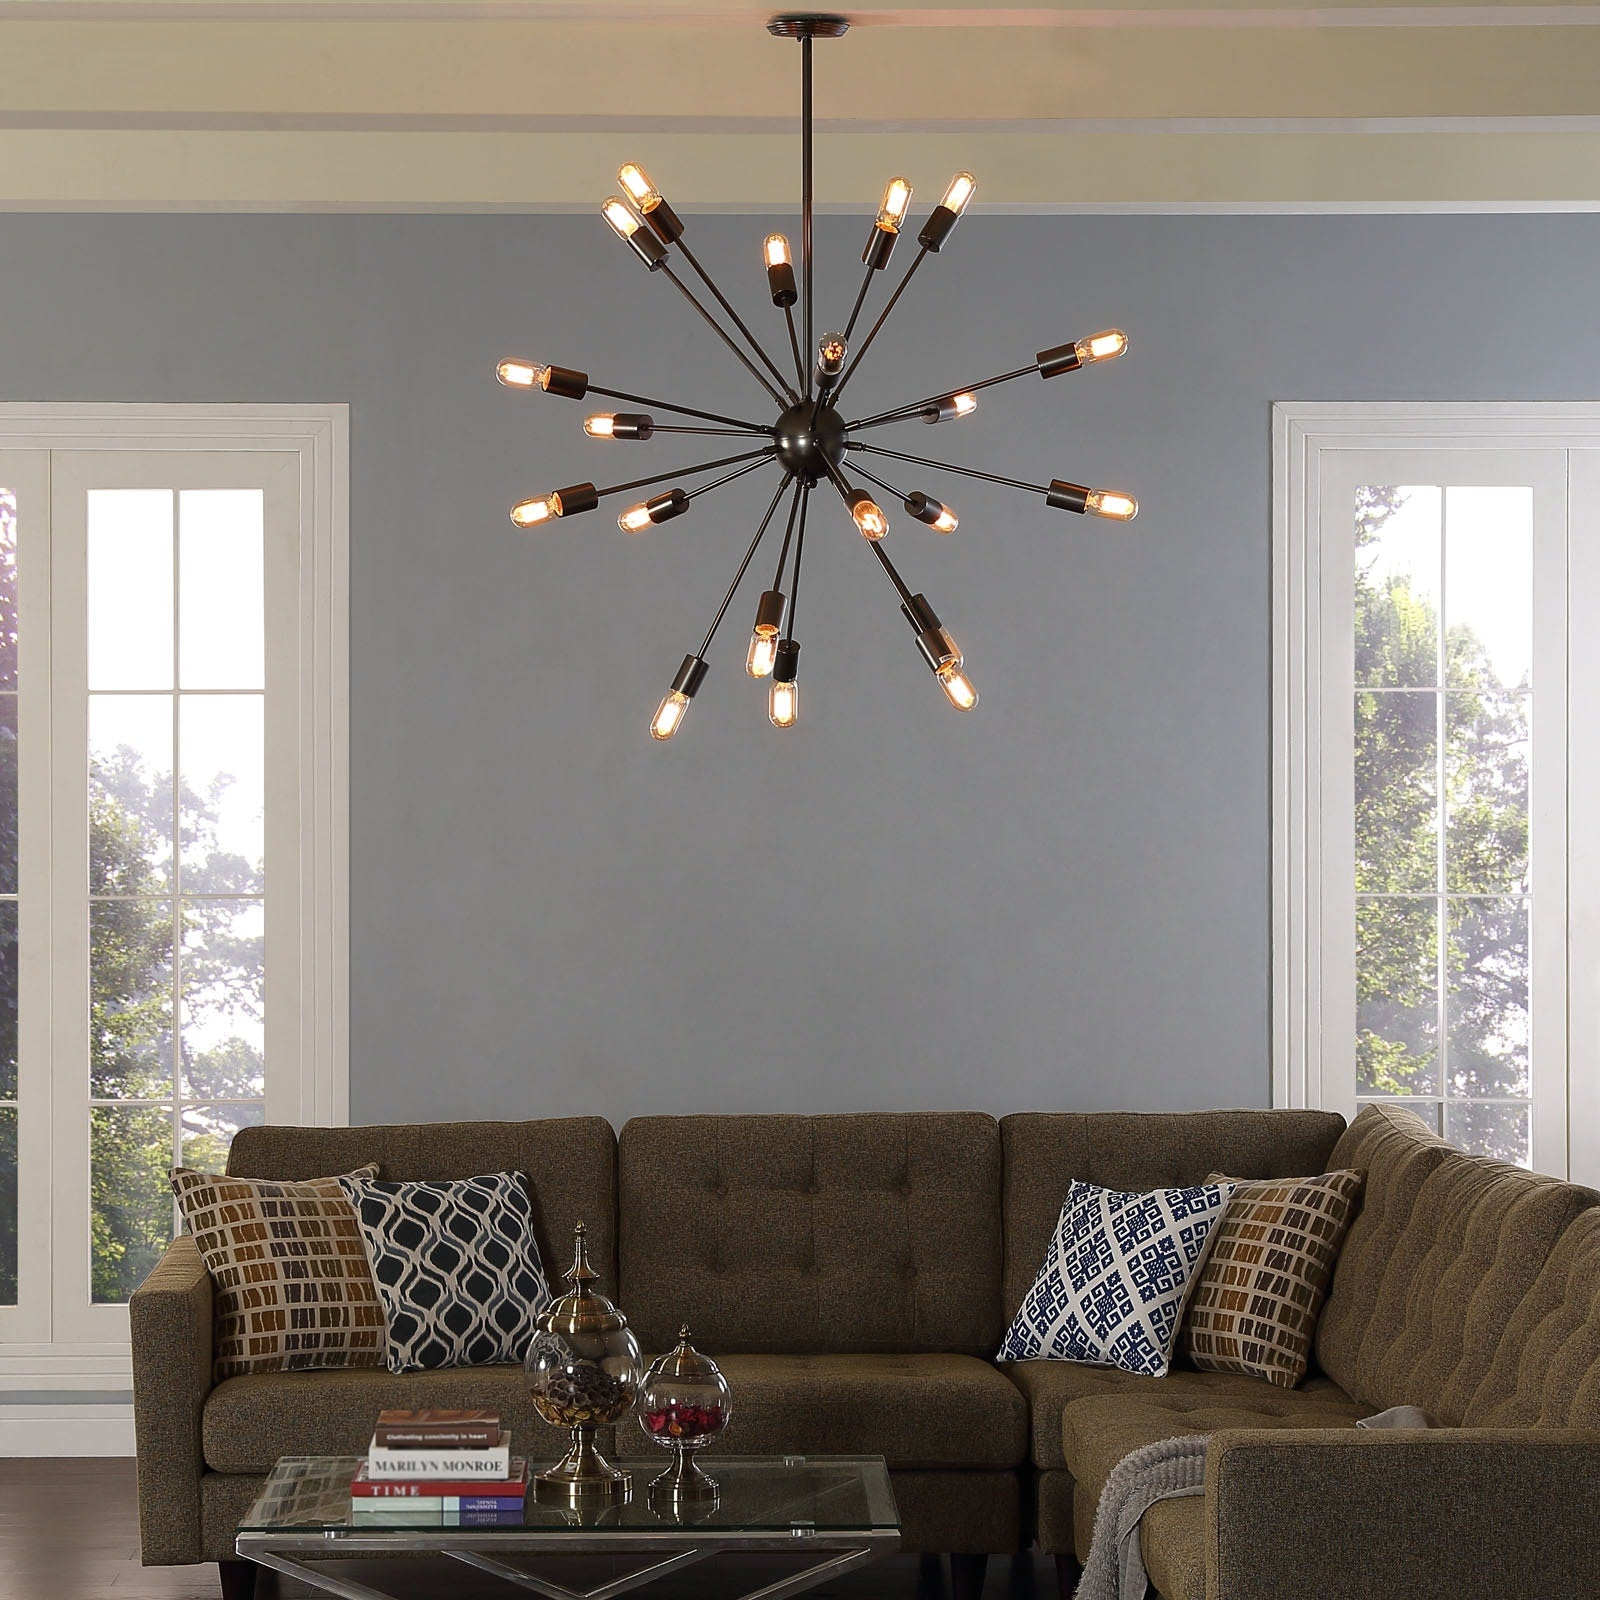 Beam Stainless Steel Chandelier - Gray